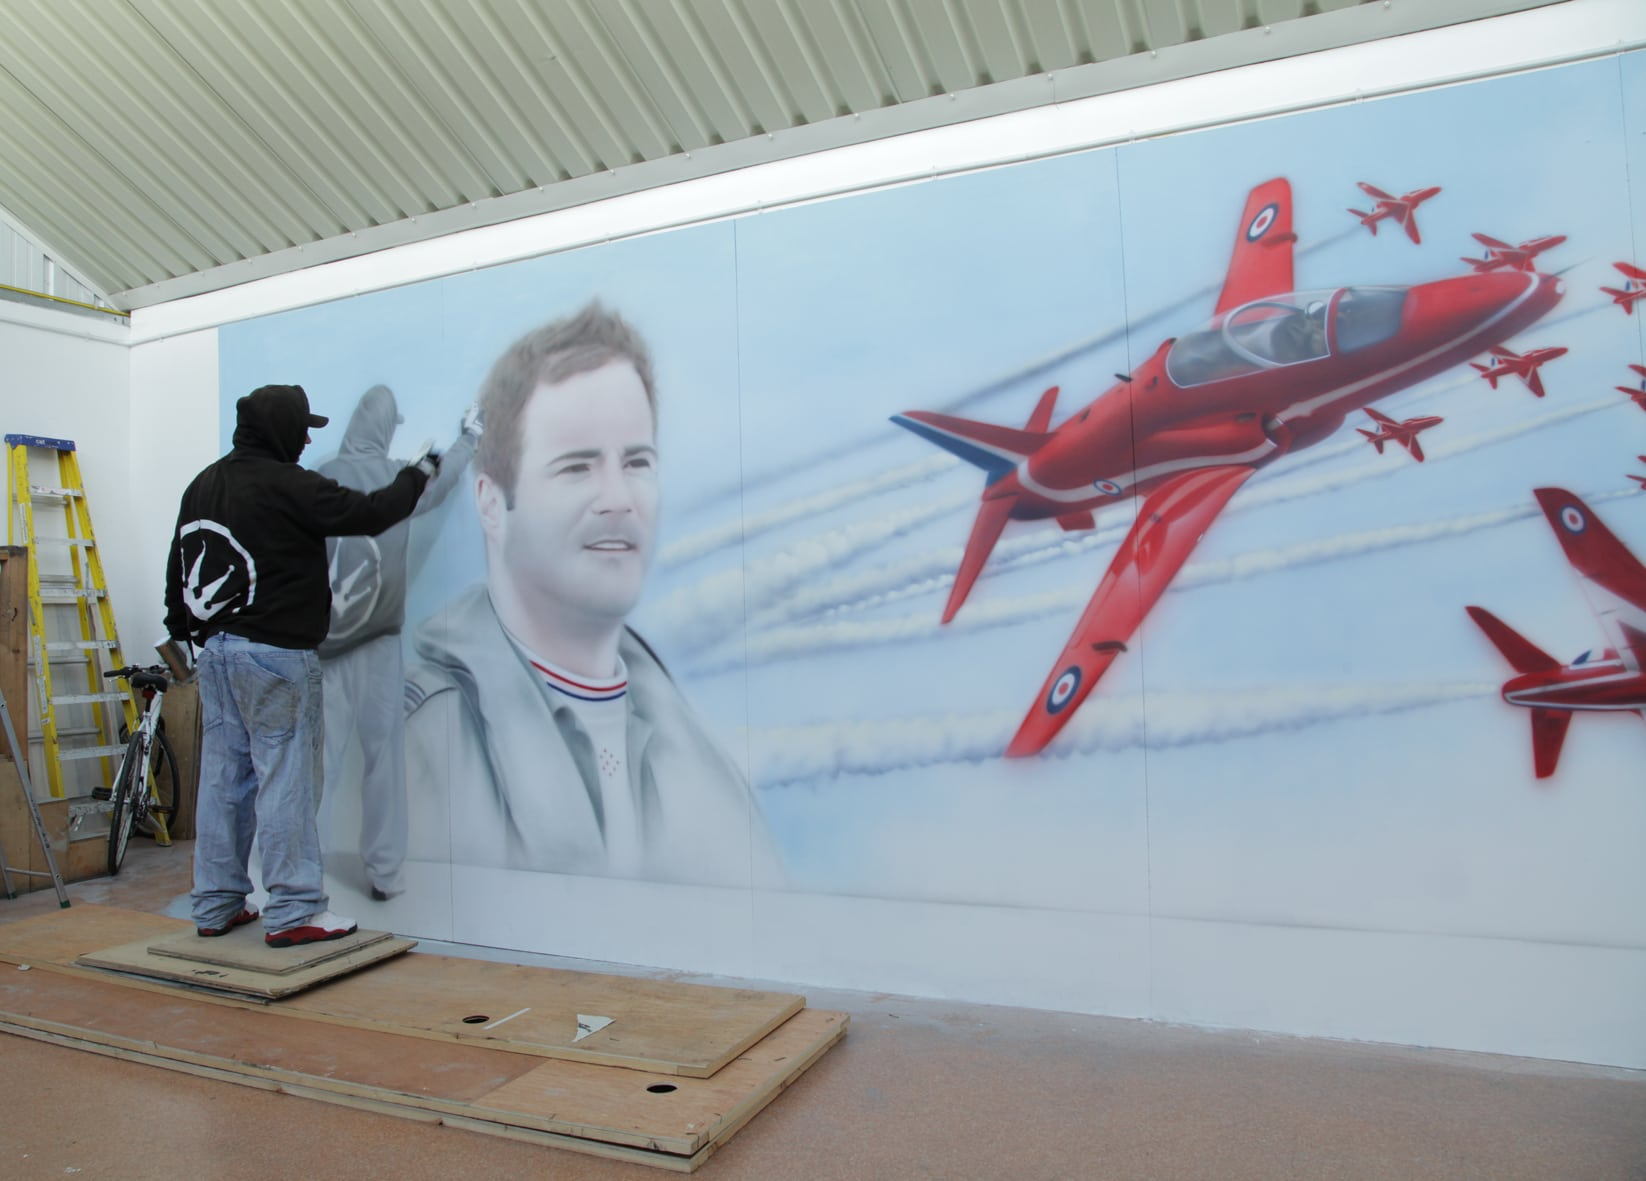 Courageous Red Arrows pilot honoured in large-scale mural